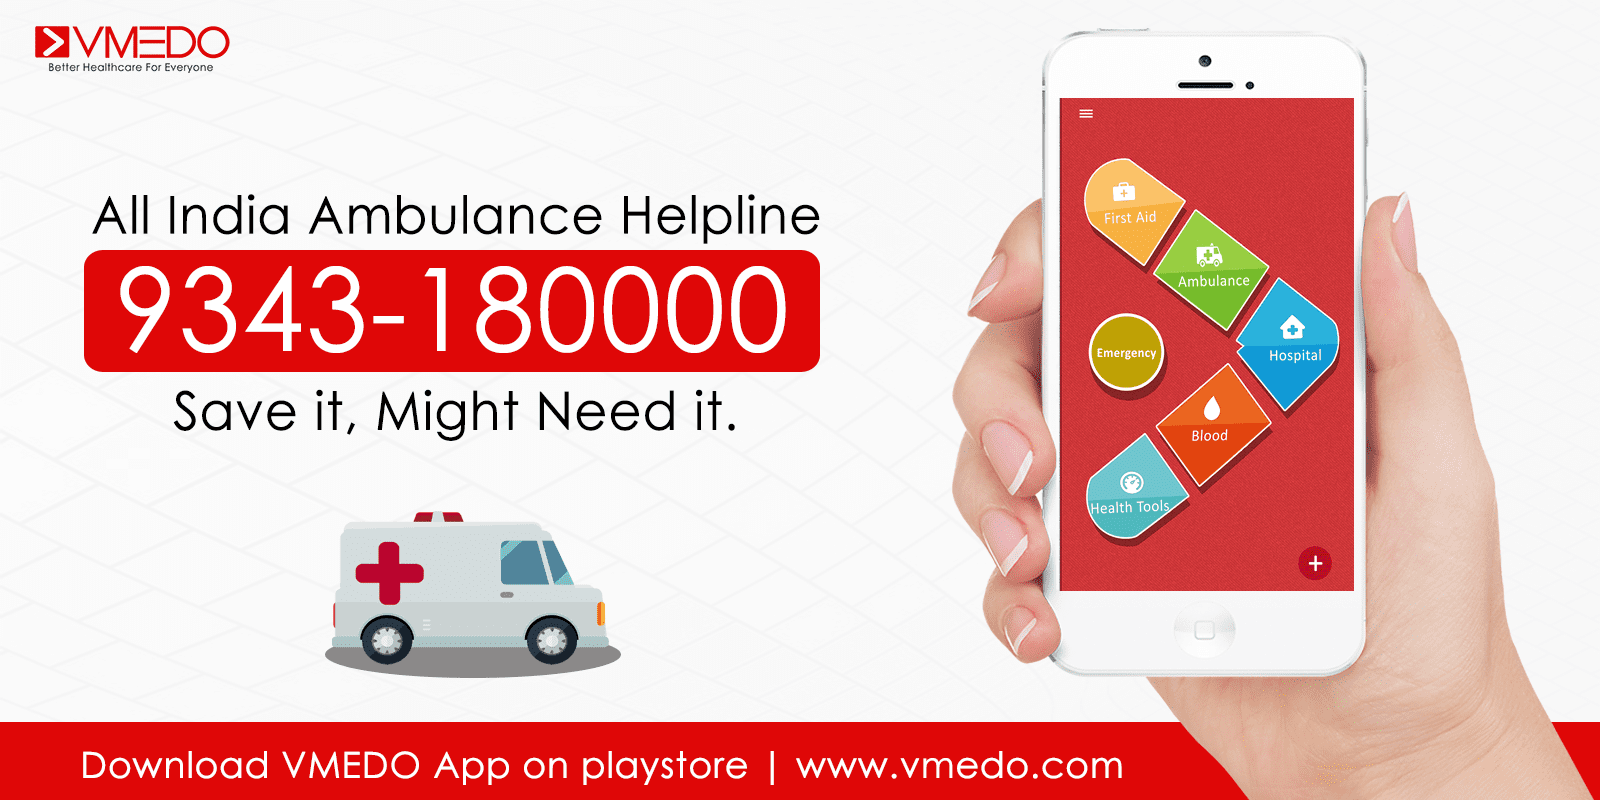 VMEDO-ambulance-helpline